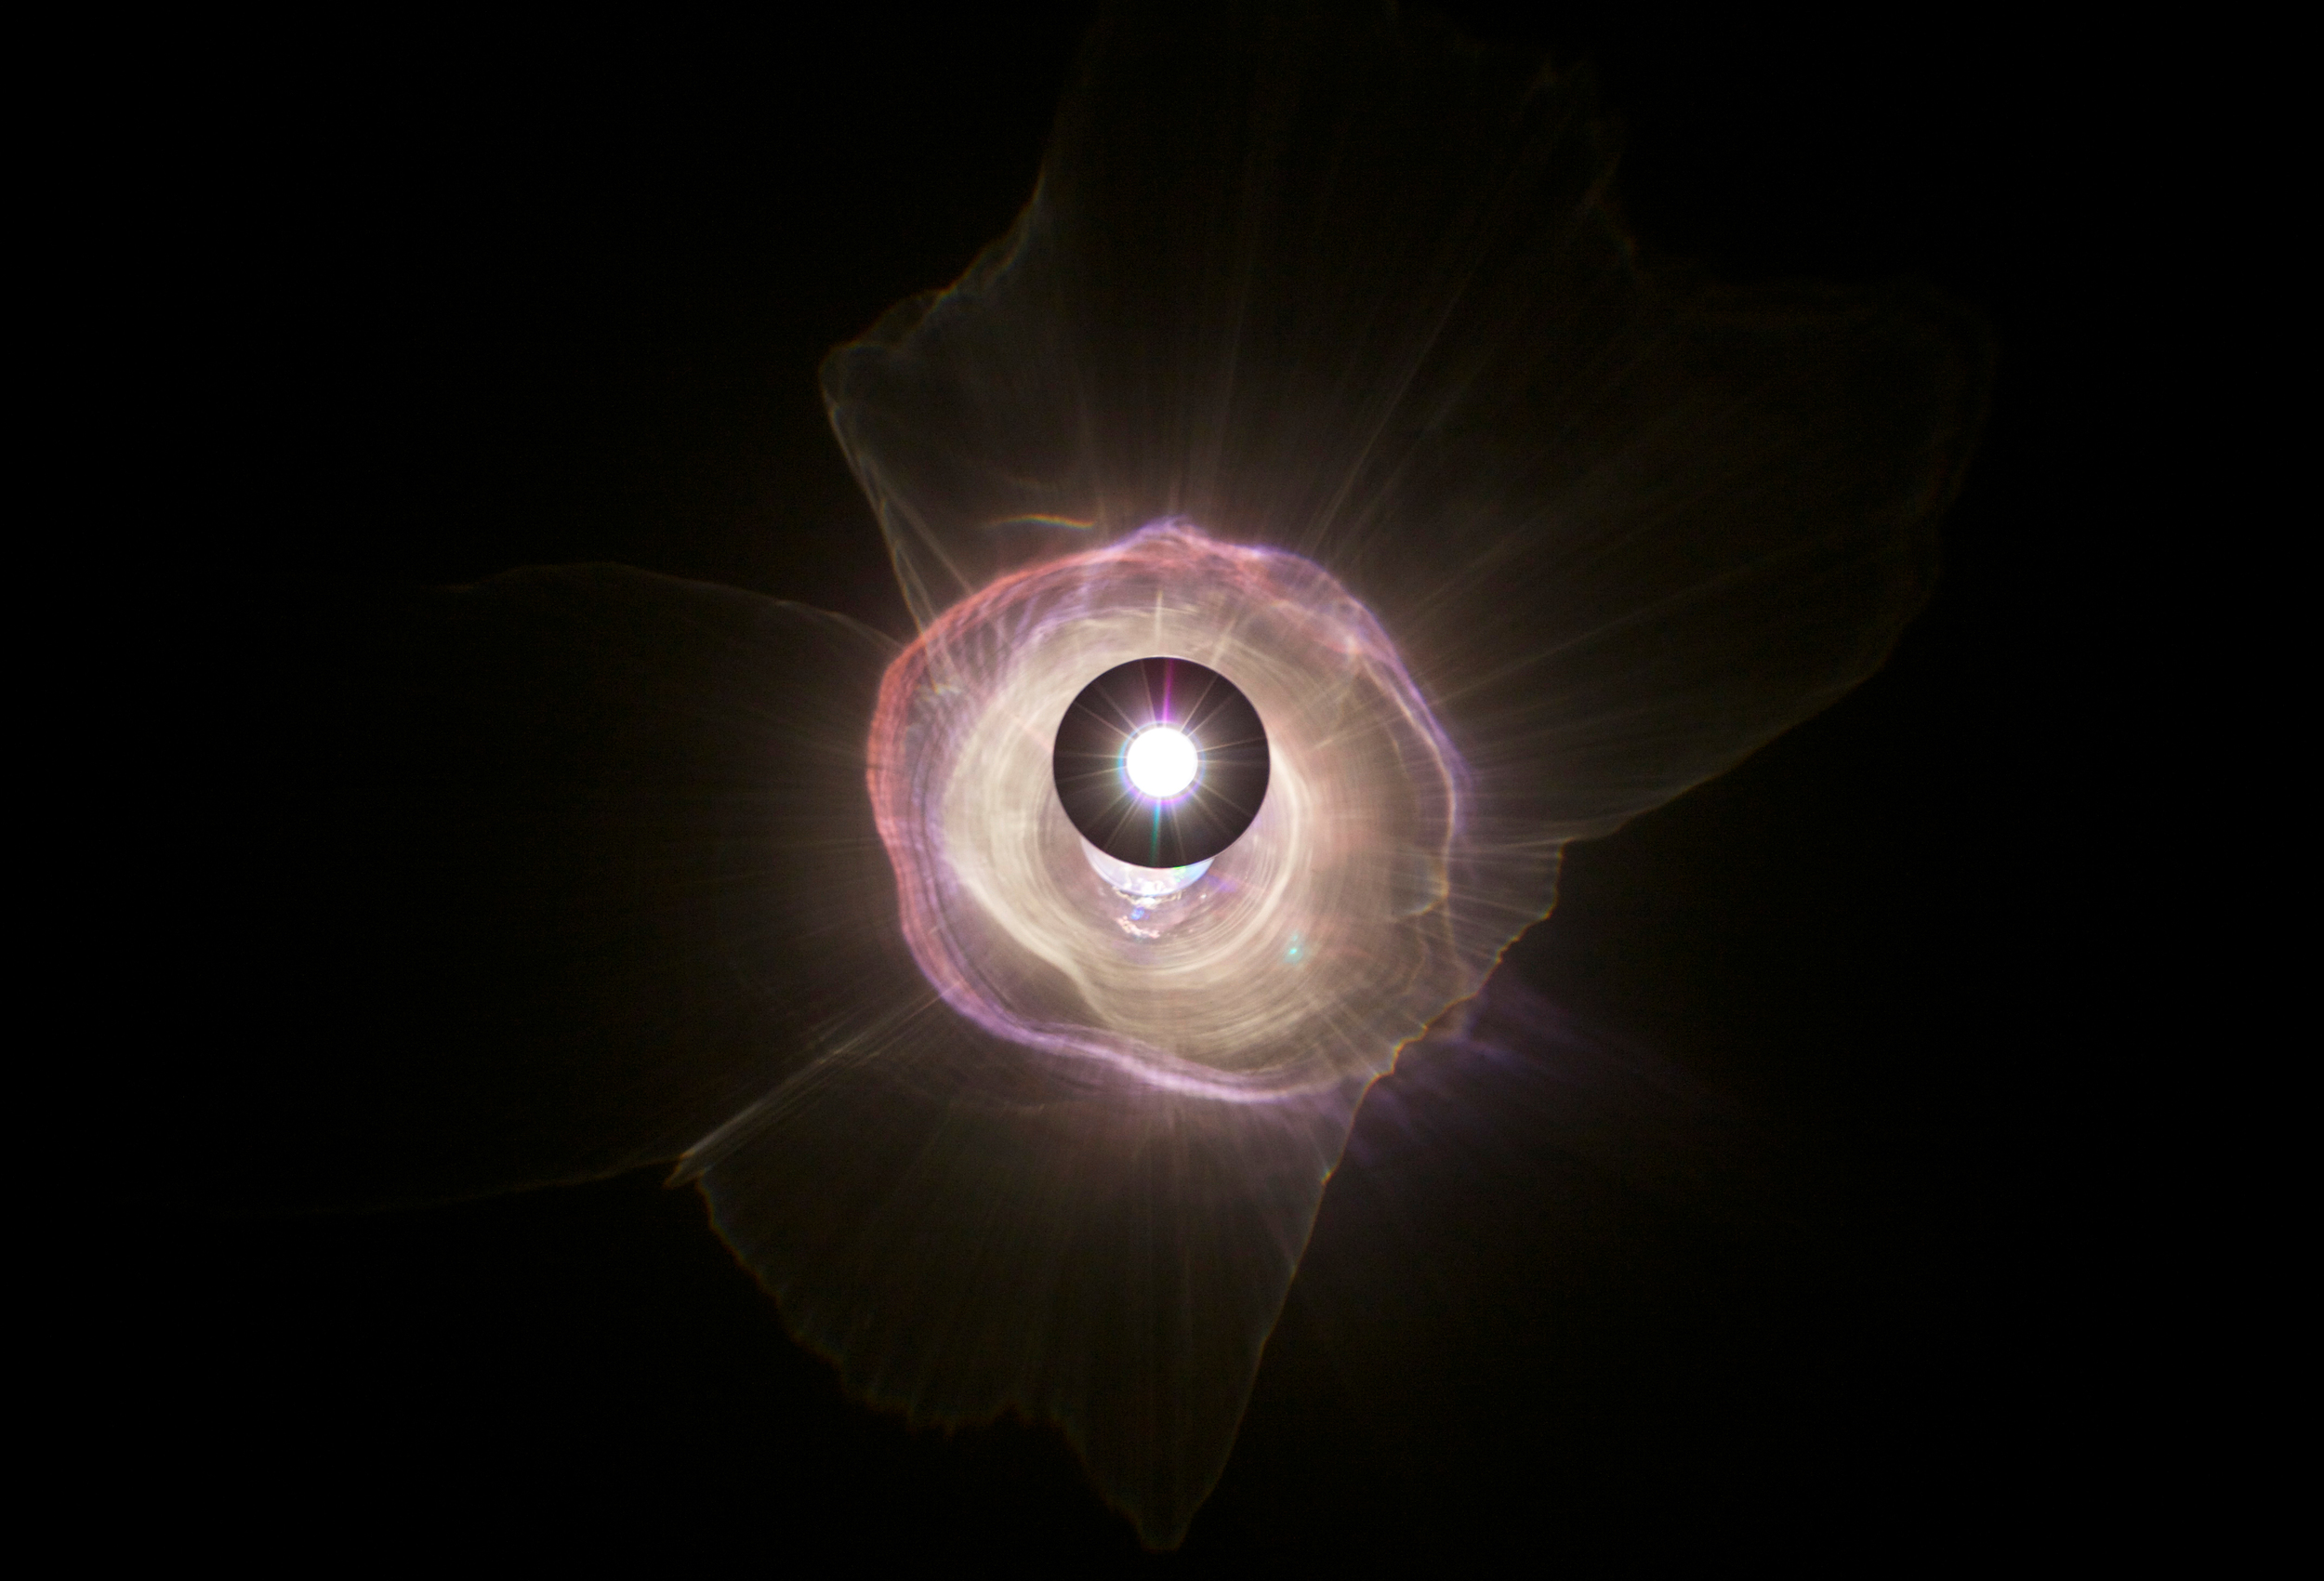 An Exploding Star is an Inverted Eye, 2014